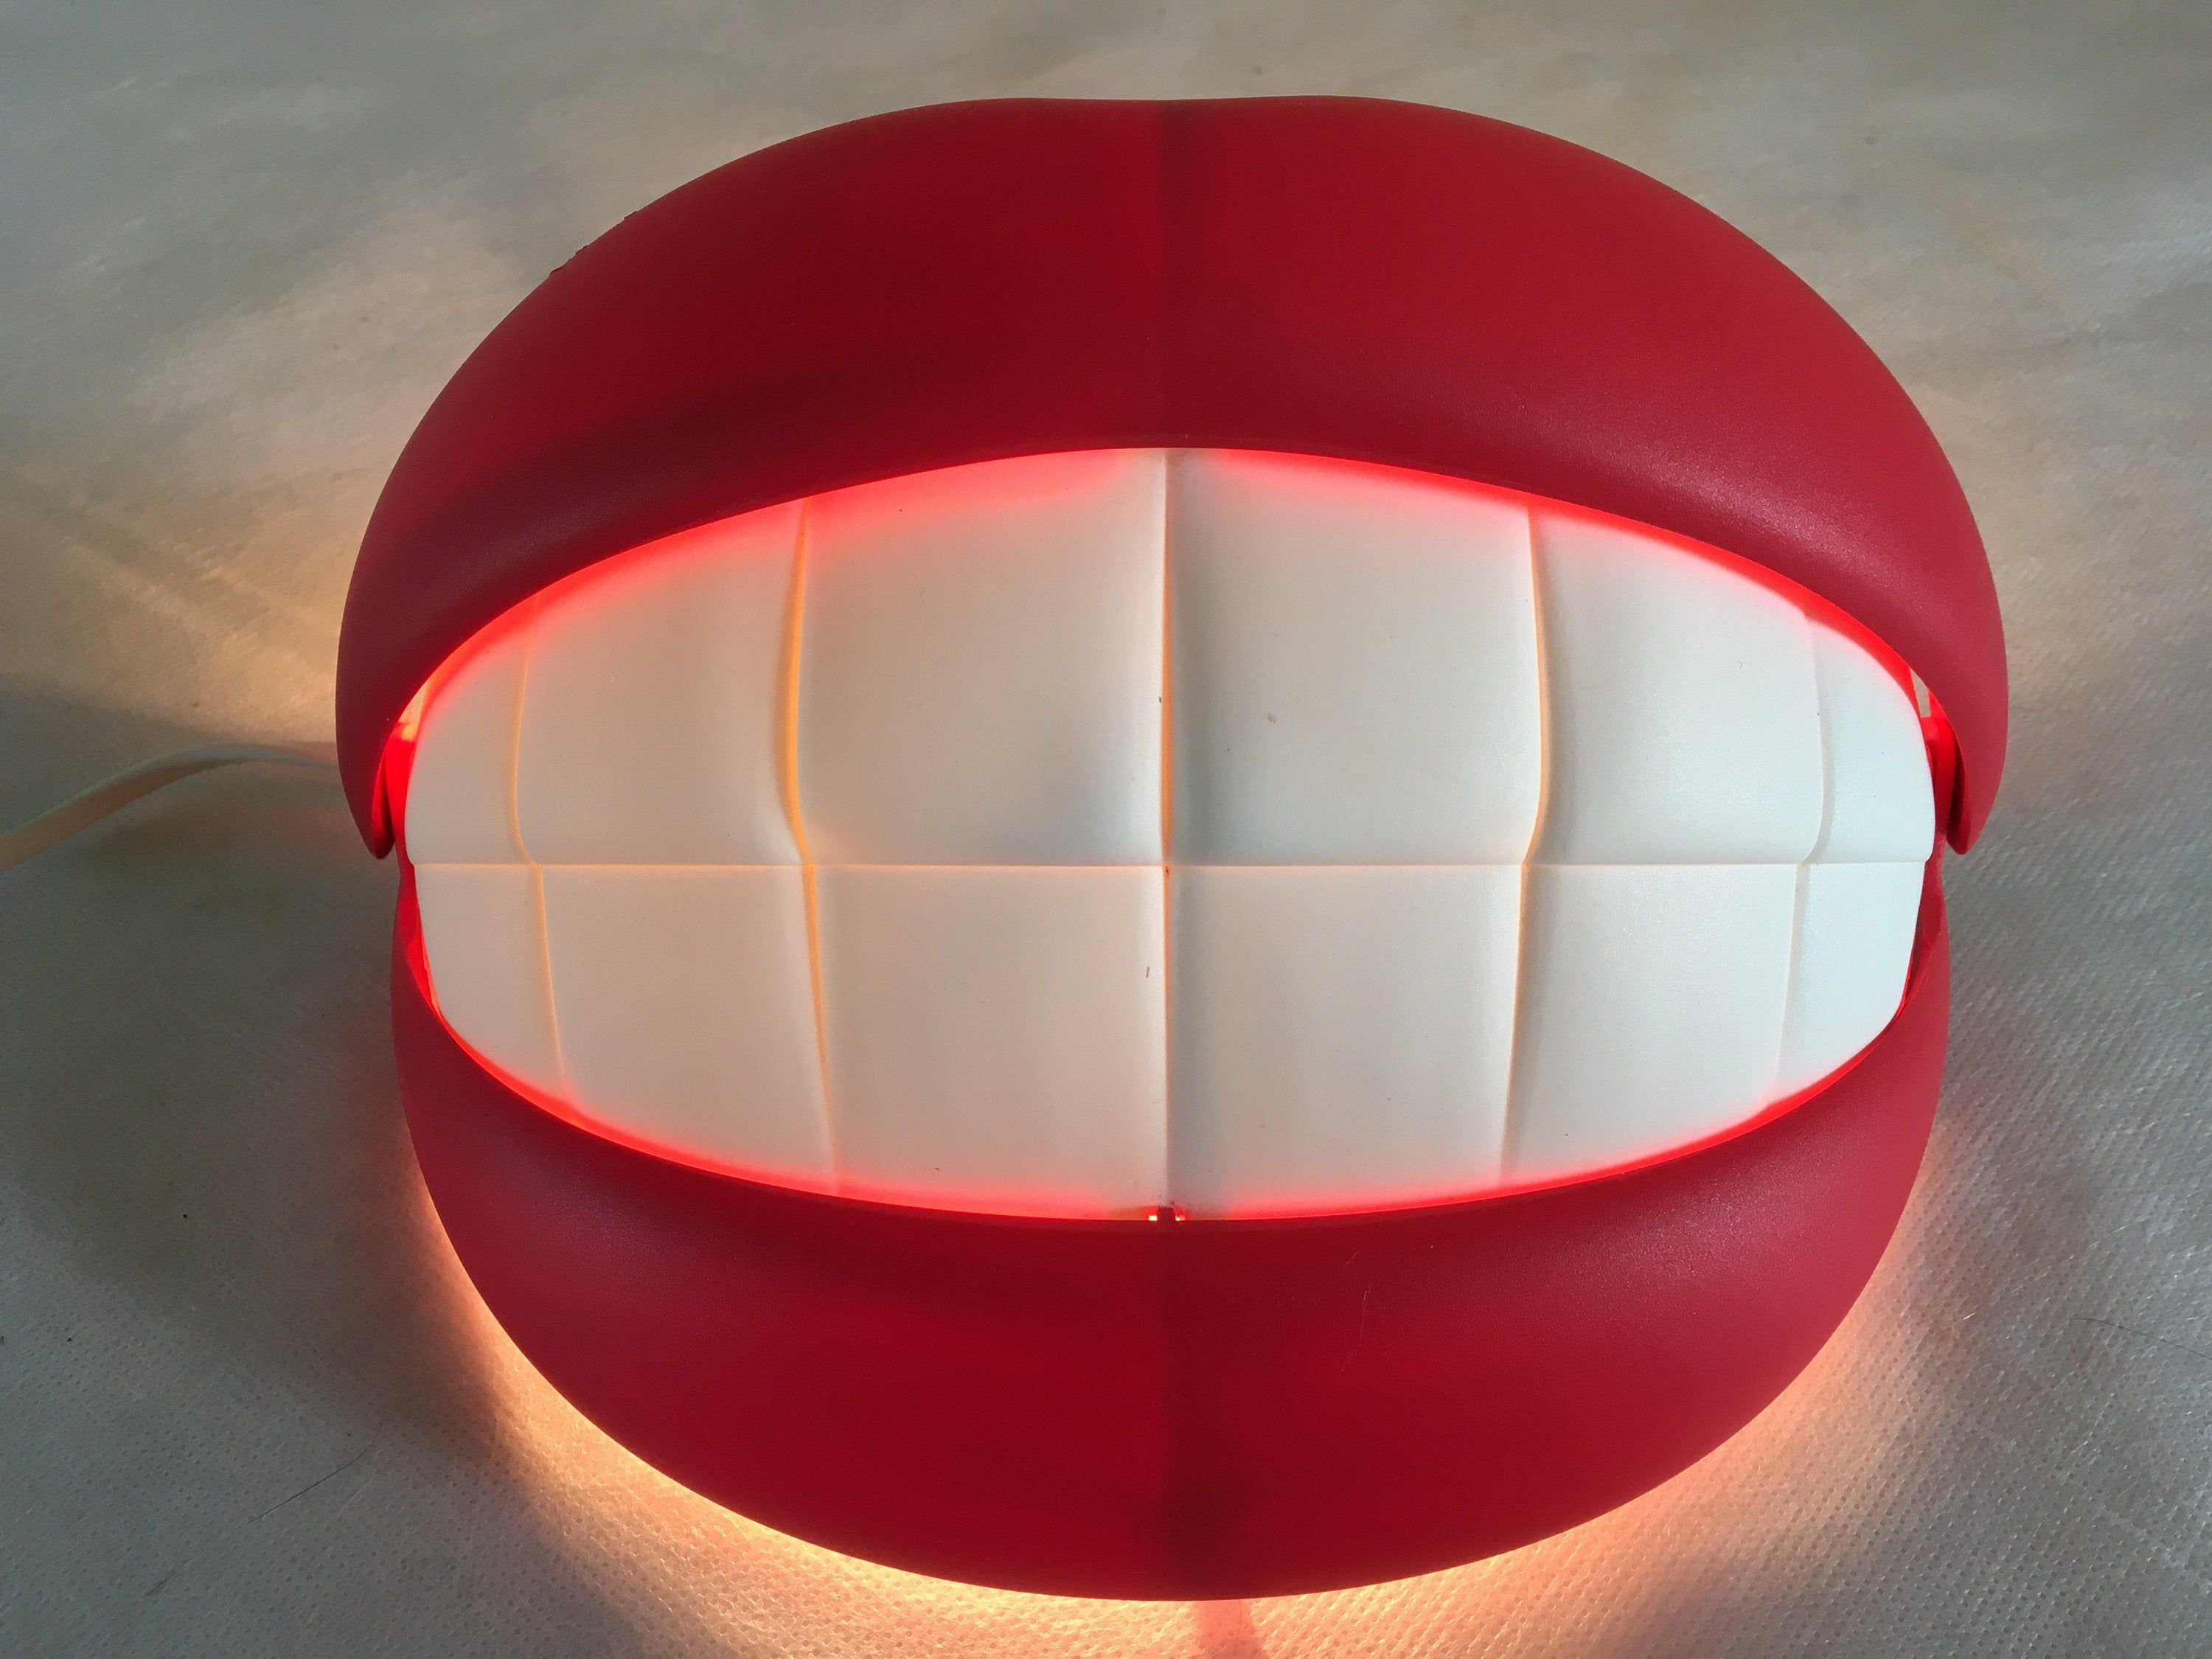 Ikea Flabb Wall Lamp Mouth Lips Teeth Smile Shaped Wall Light Corded Wall Sconce Art Deco Design In 2020 Art Deco Deco Neon